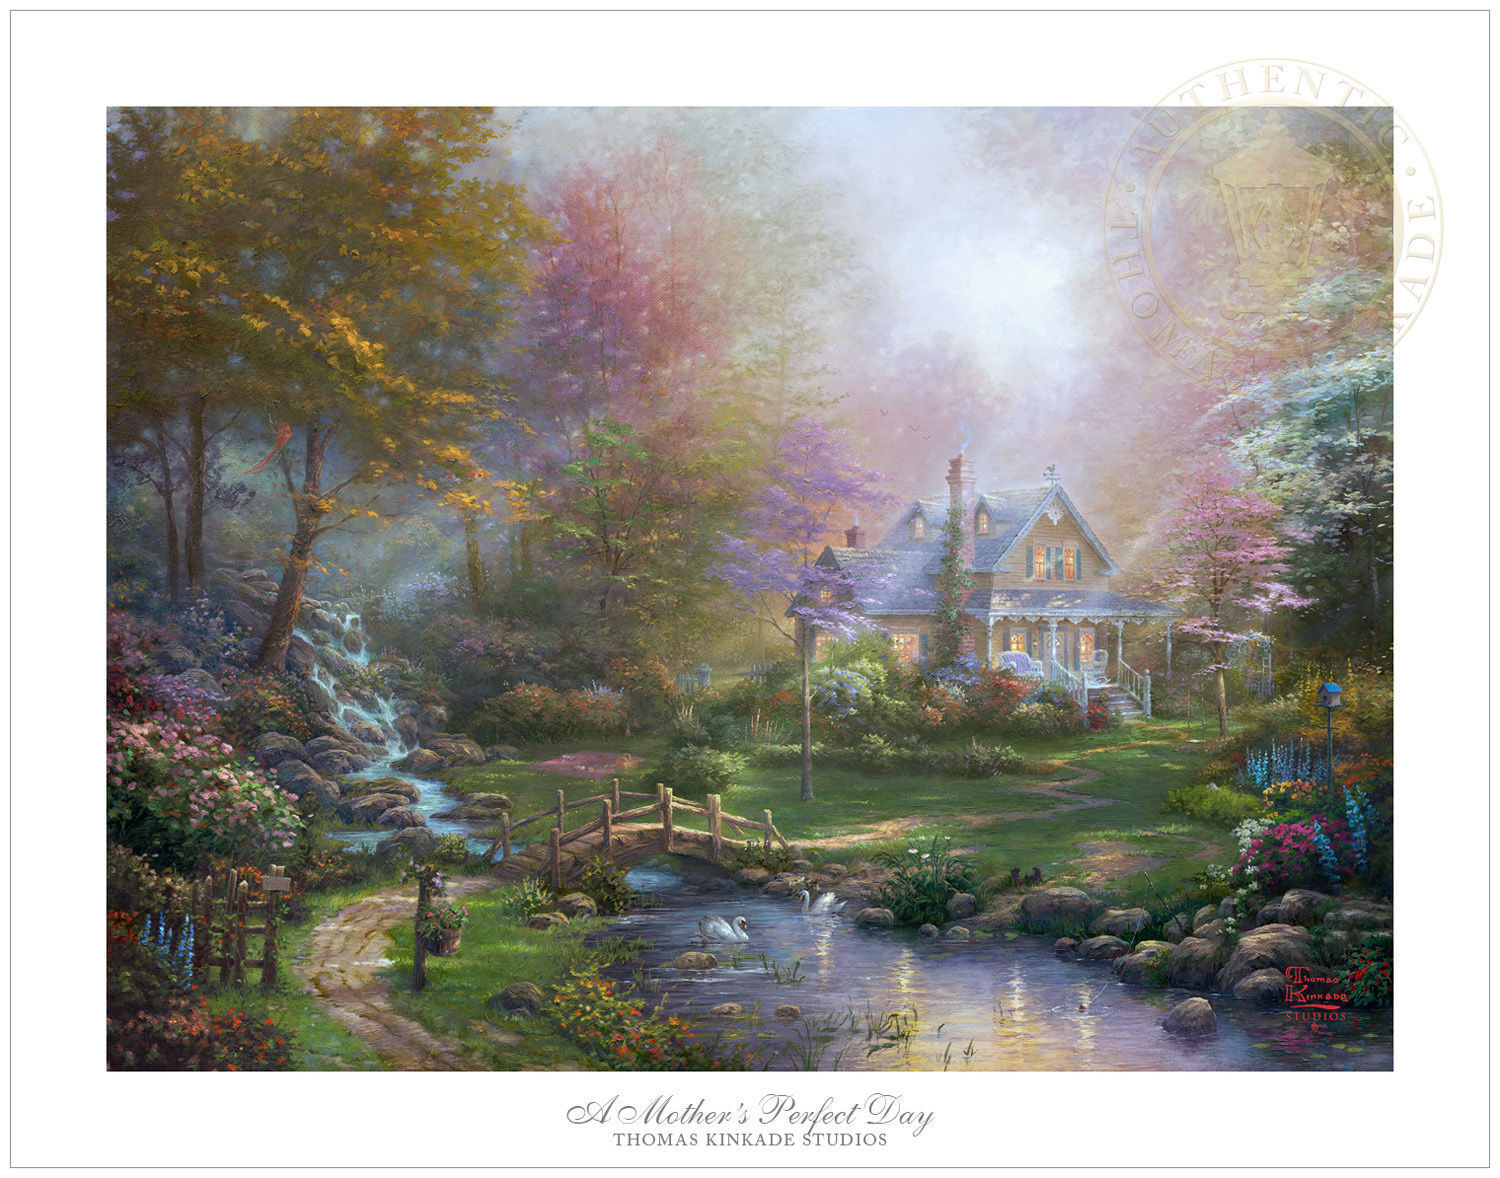 Thomas Kinkade Studios A Mother's Perfect Day 18 x 24 SN Limited Edition Paper